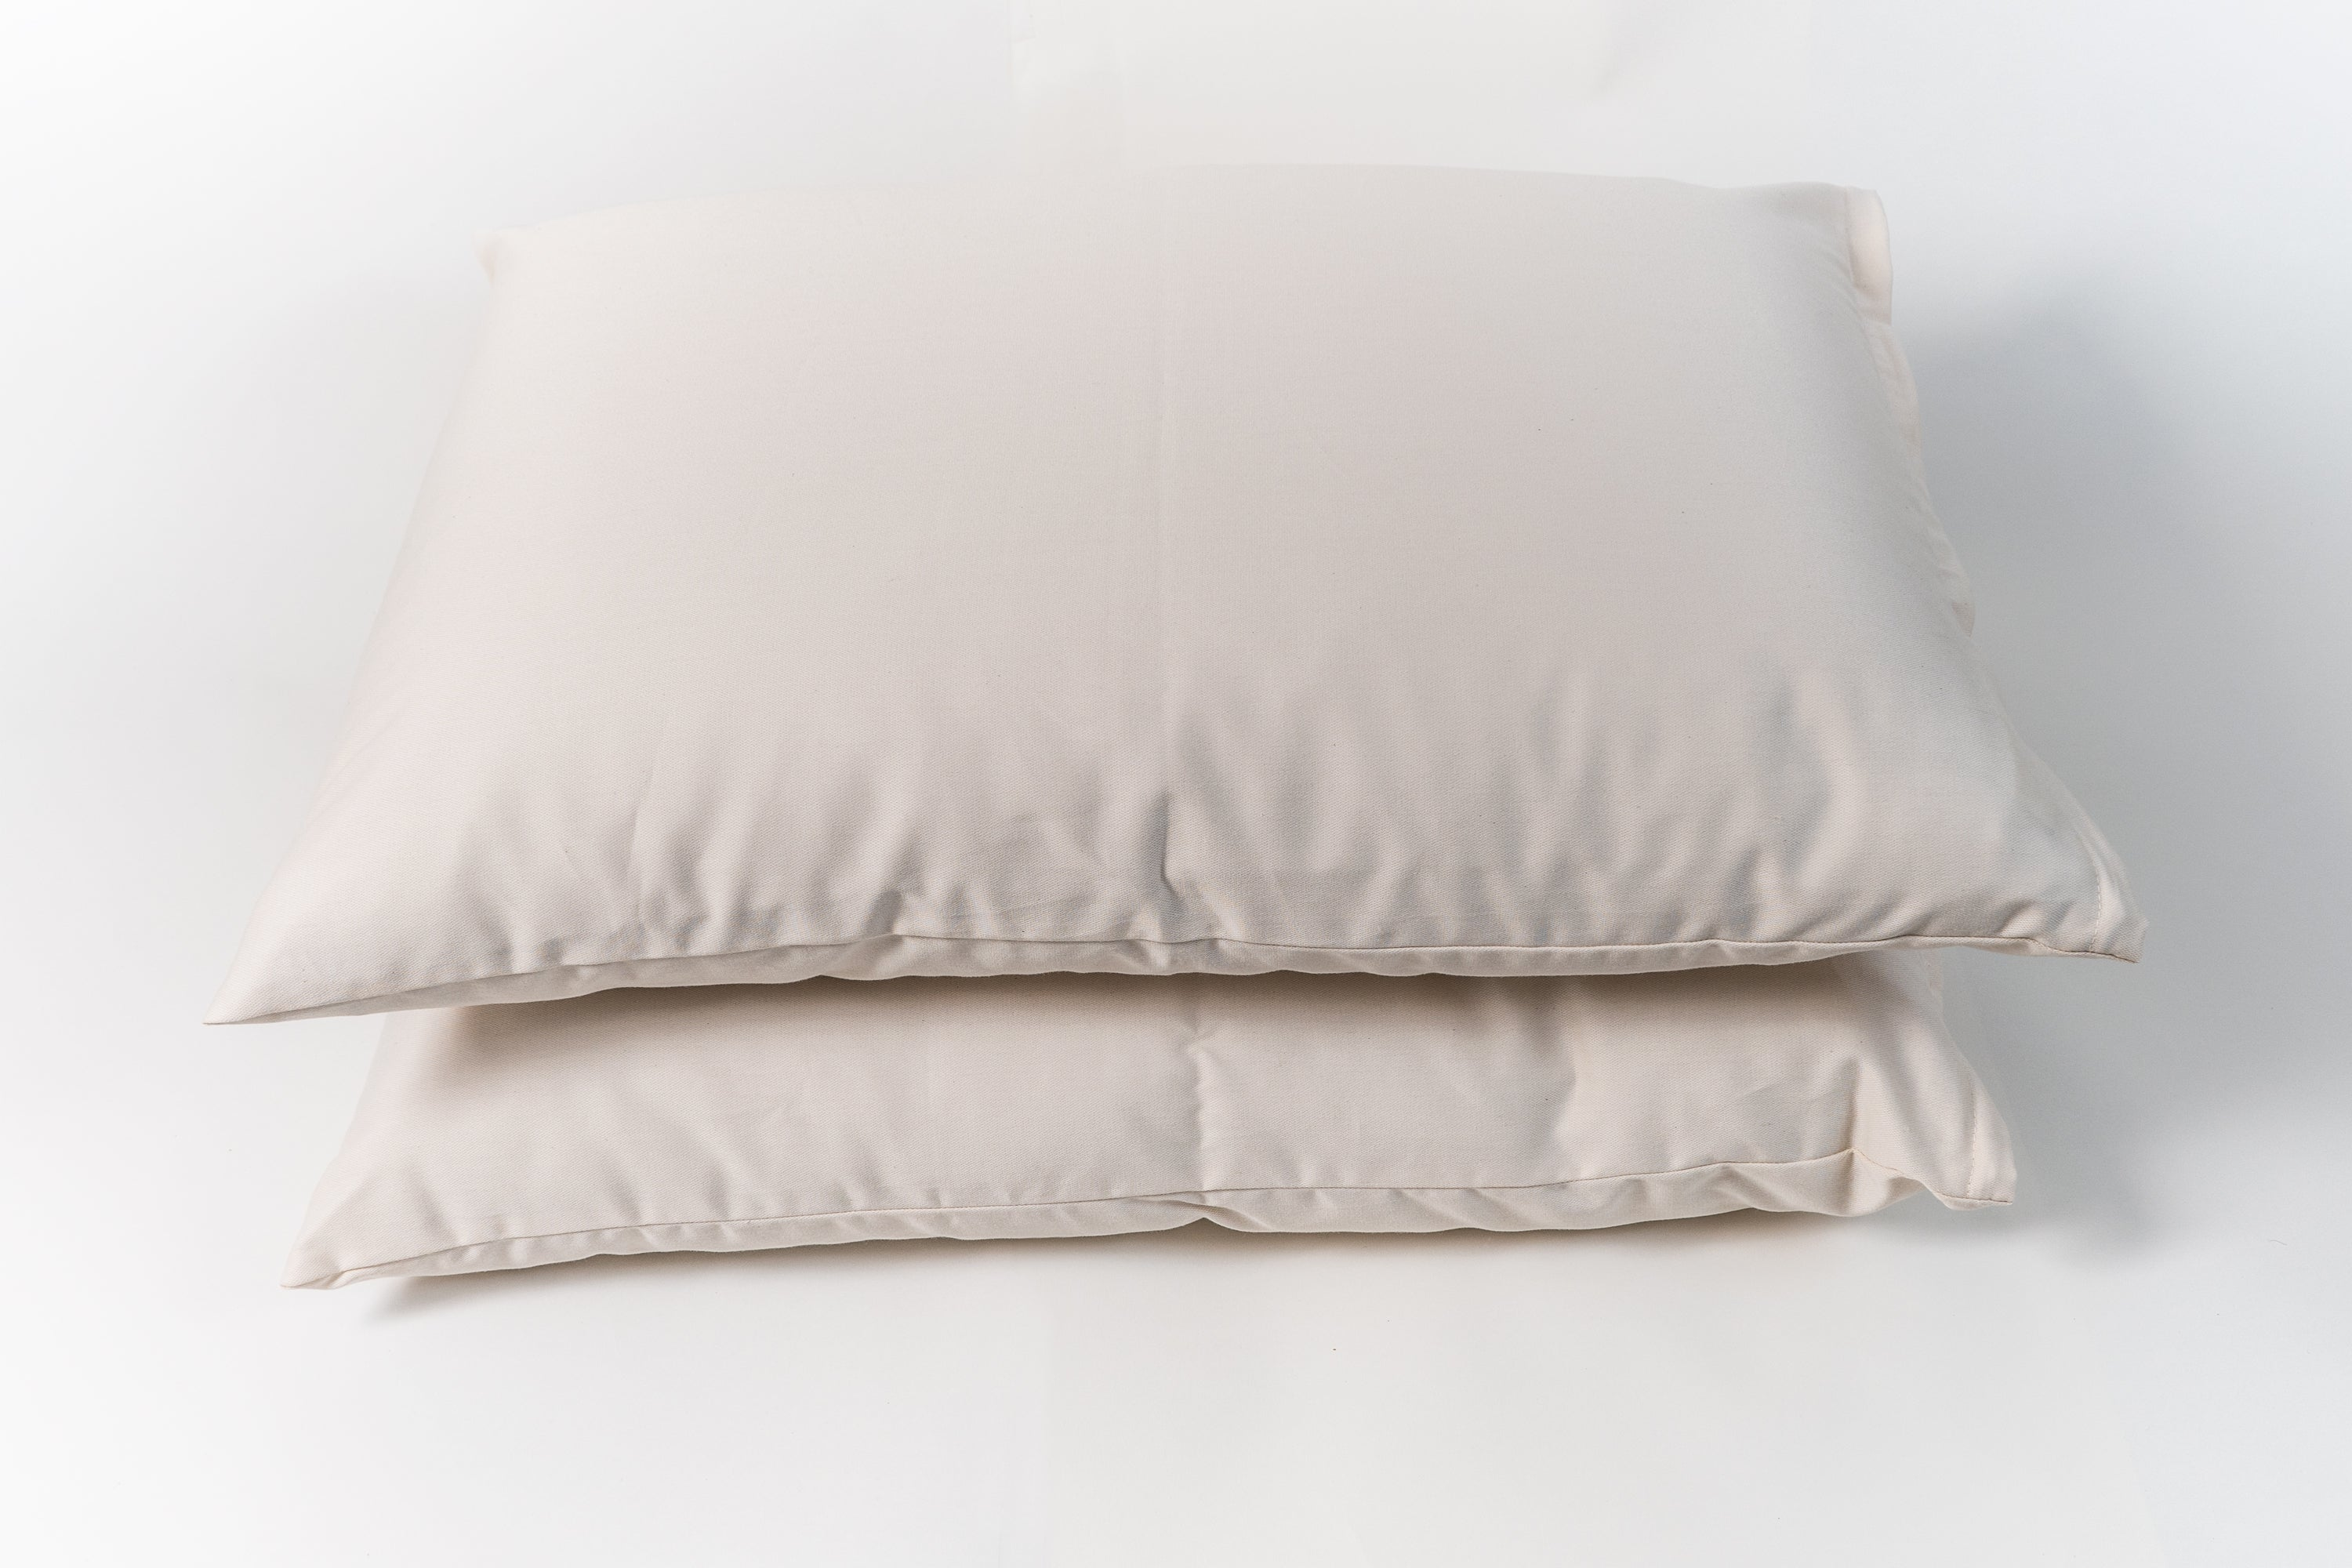 p cot zoom anti img day sleepers htm little to hover next fogarty pillow bed allergy